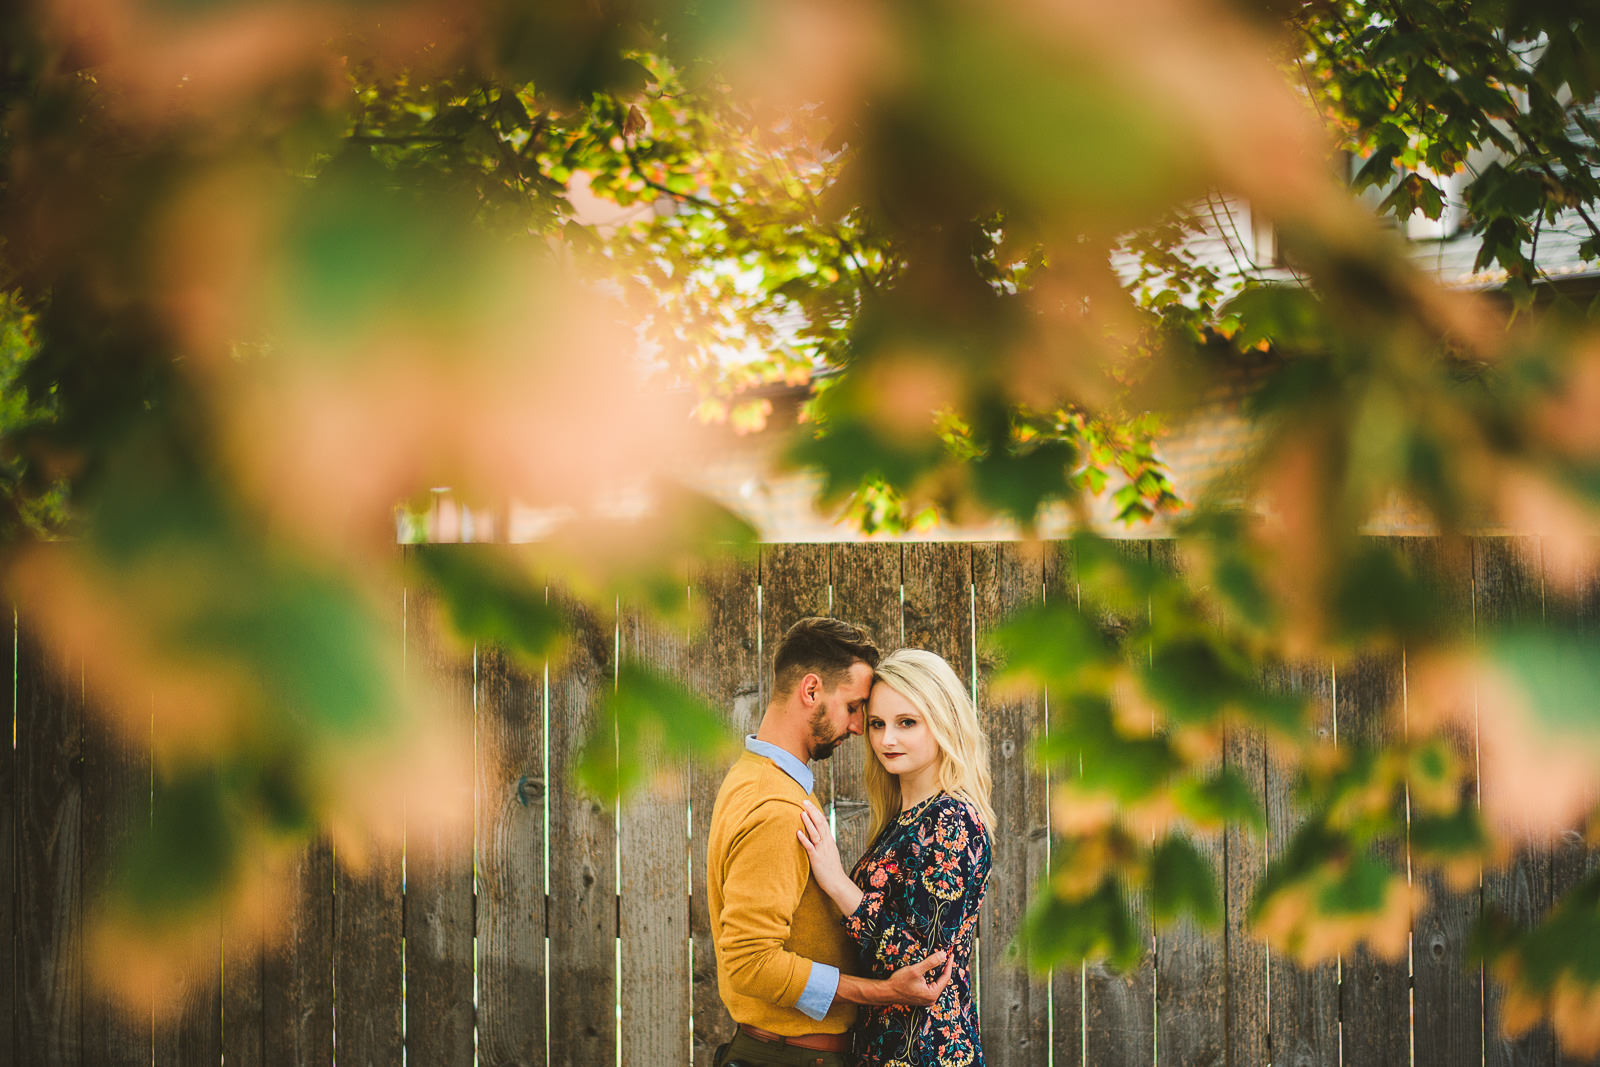 12 chicago engagement photos - Wes Anderson Inspired Engagement Session in Wicker Park // Kelsey + Mark